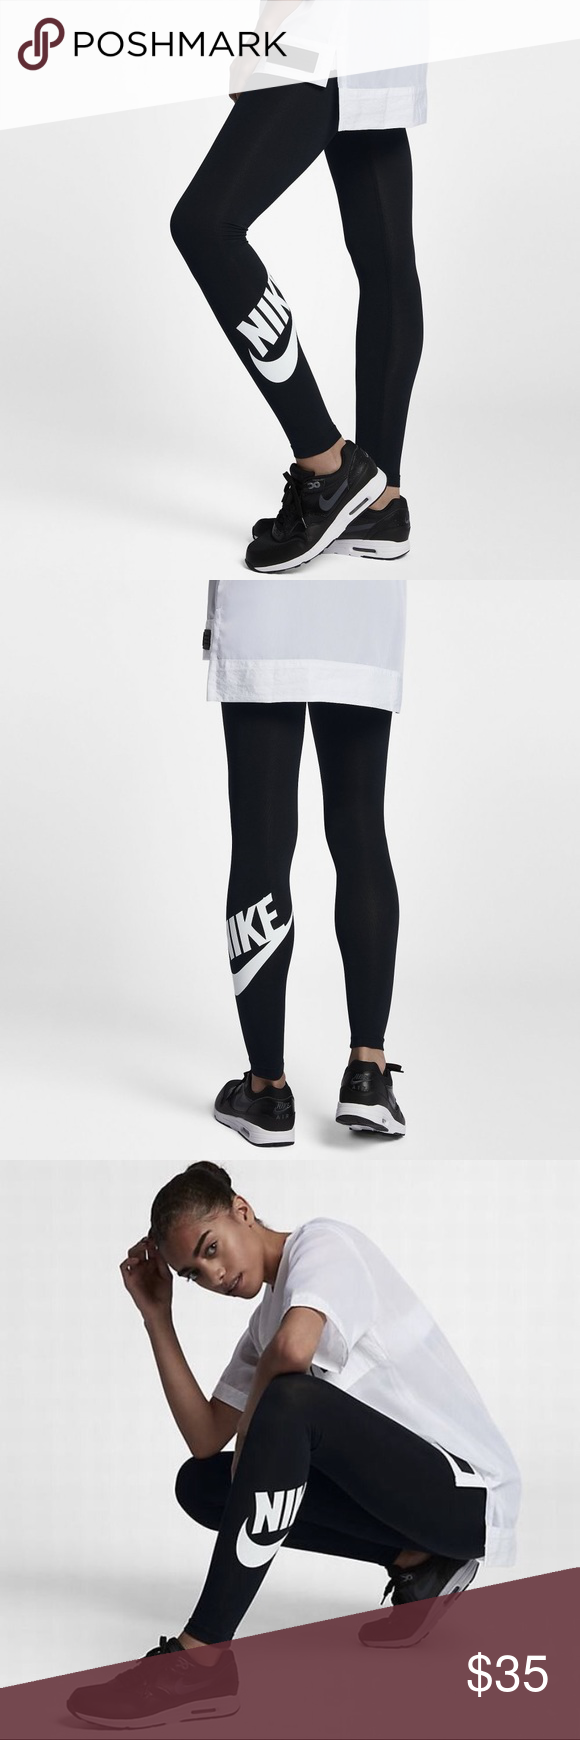 brand new 1014d 39561 Nike High Waisted Leg-A-See Graphic Tights NWT Nike Women s Sportswear High  Waisted Leg-A-See Graphic Tights Size S Nike Pants Leggings